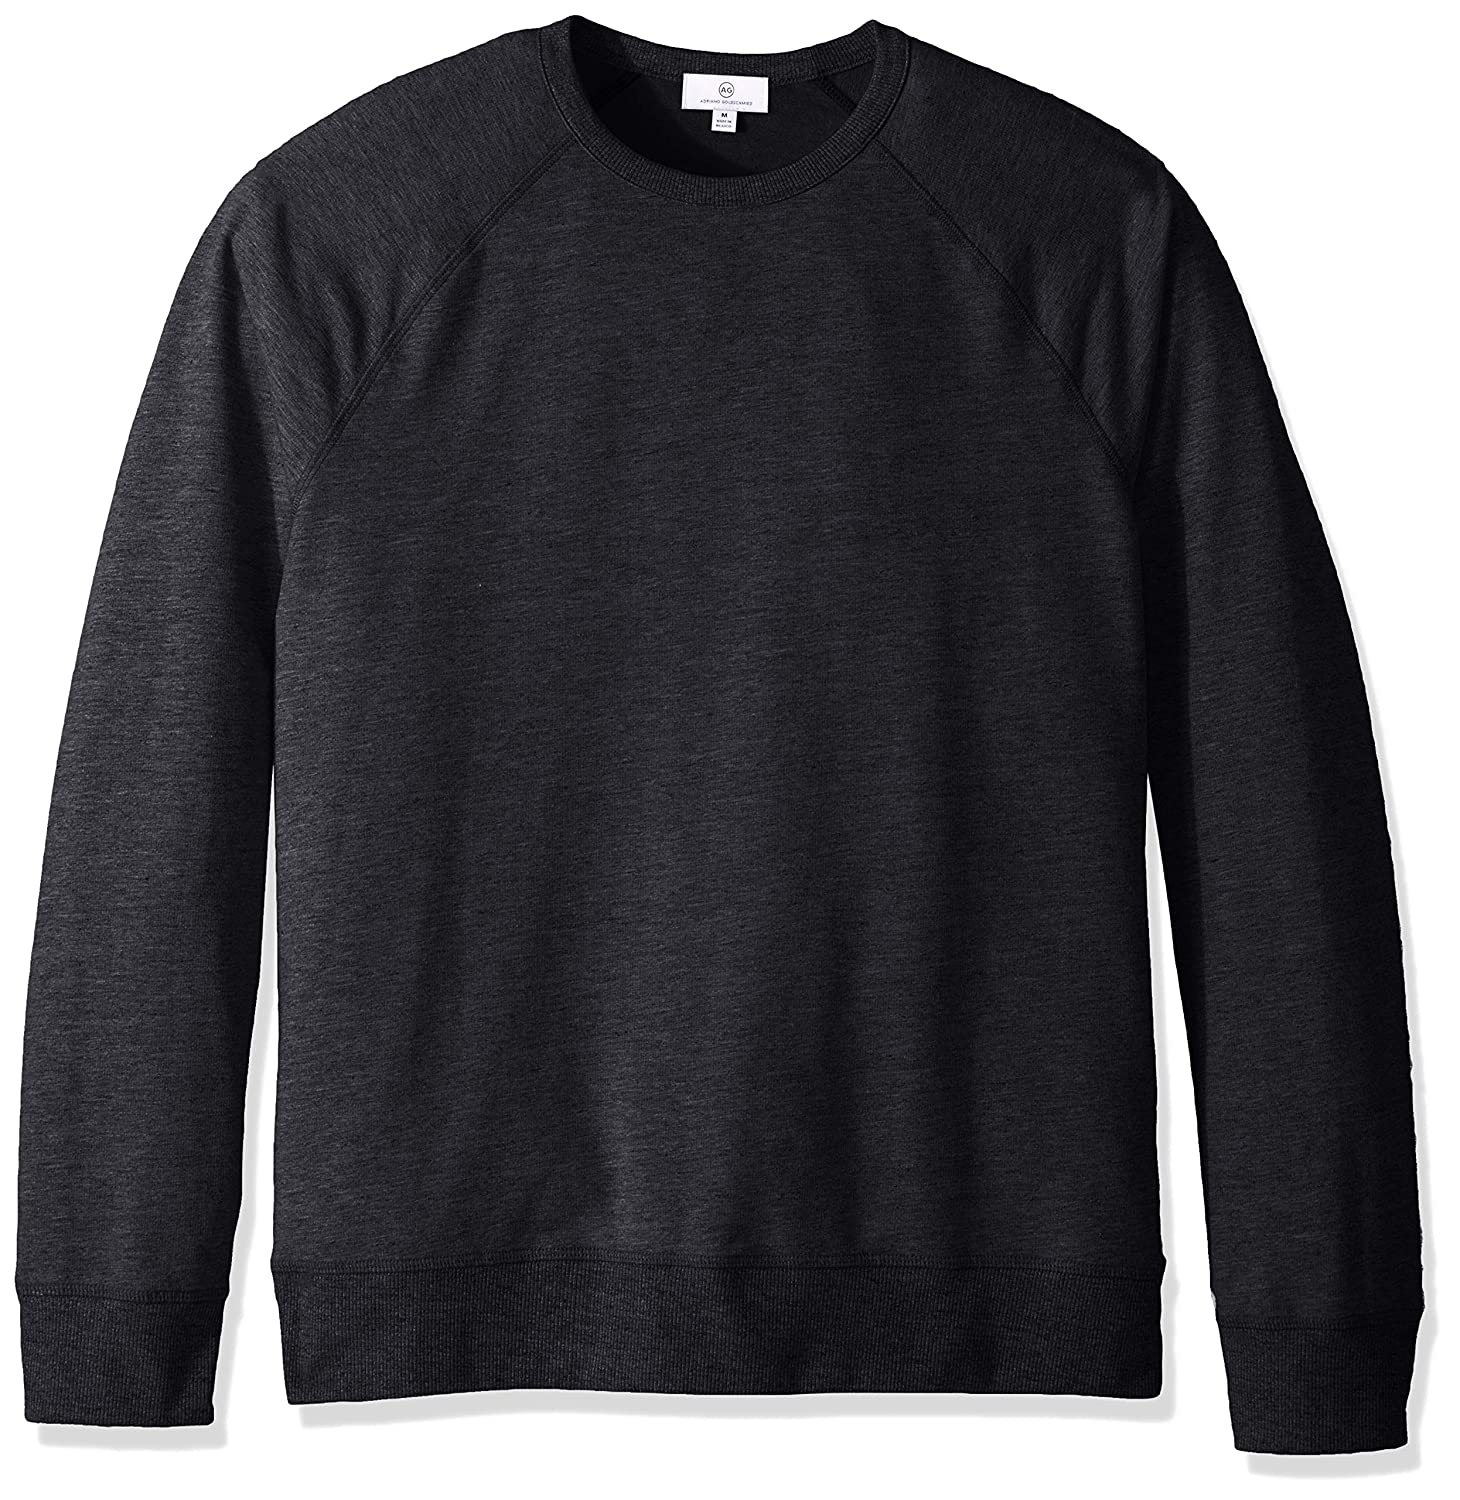 AG Adriano Goldschmied Mens Siris Long Sleeve Crew